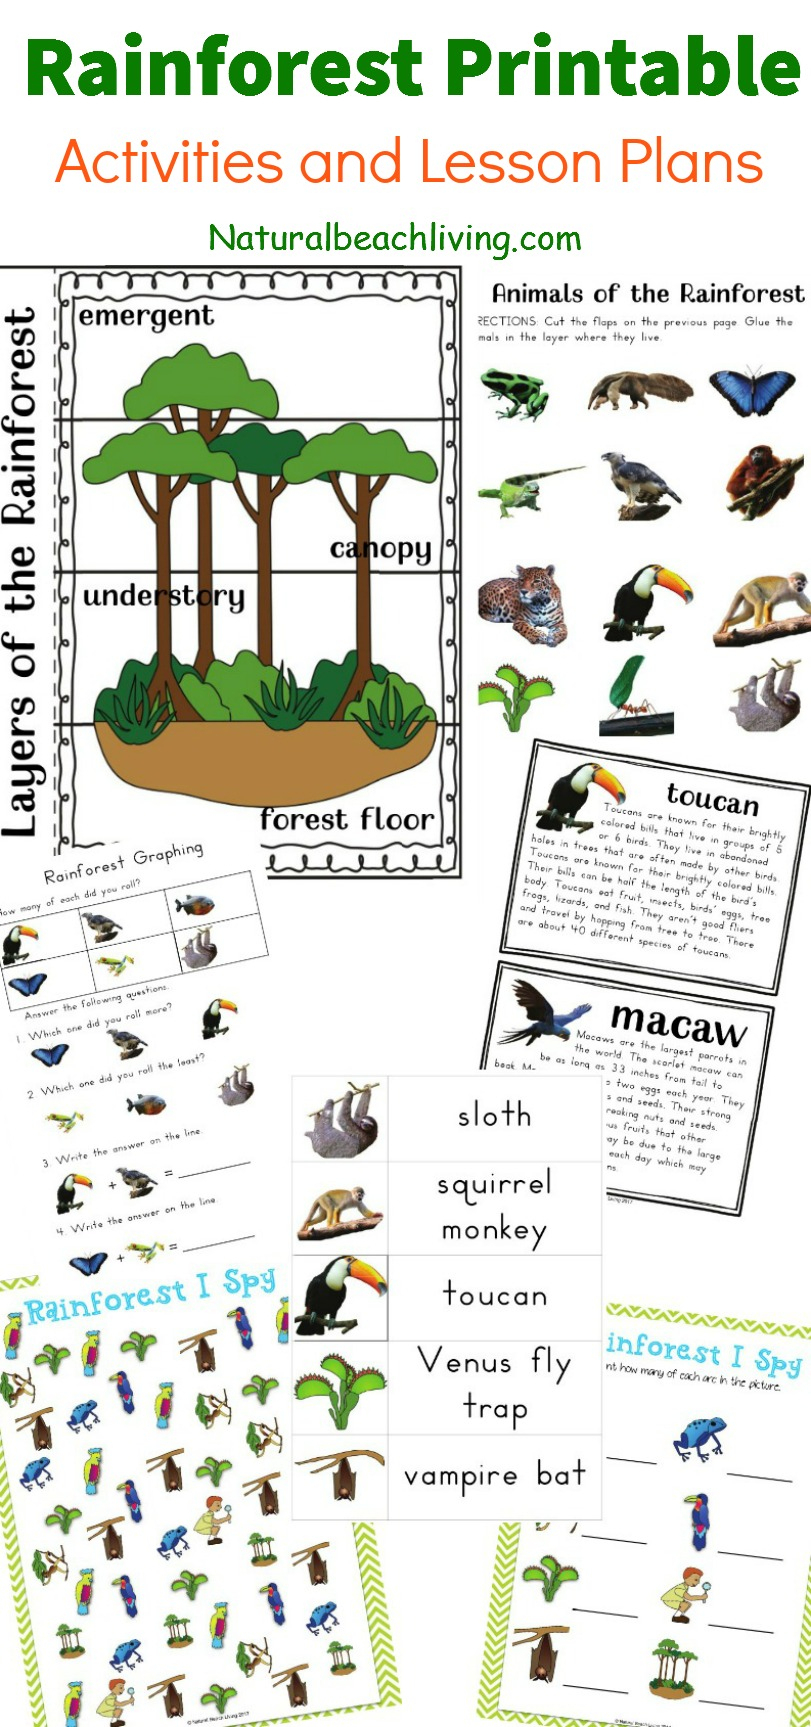 The Best Rainforest Printable Activities For Kids - Natural Beach Living | Rainforest Printable Worksheets